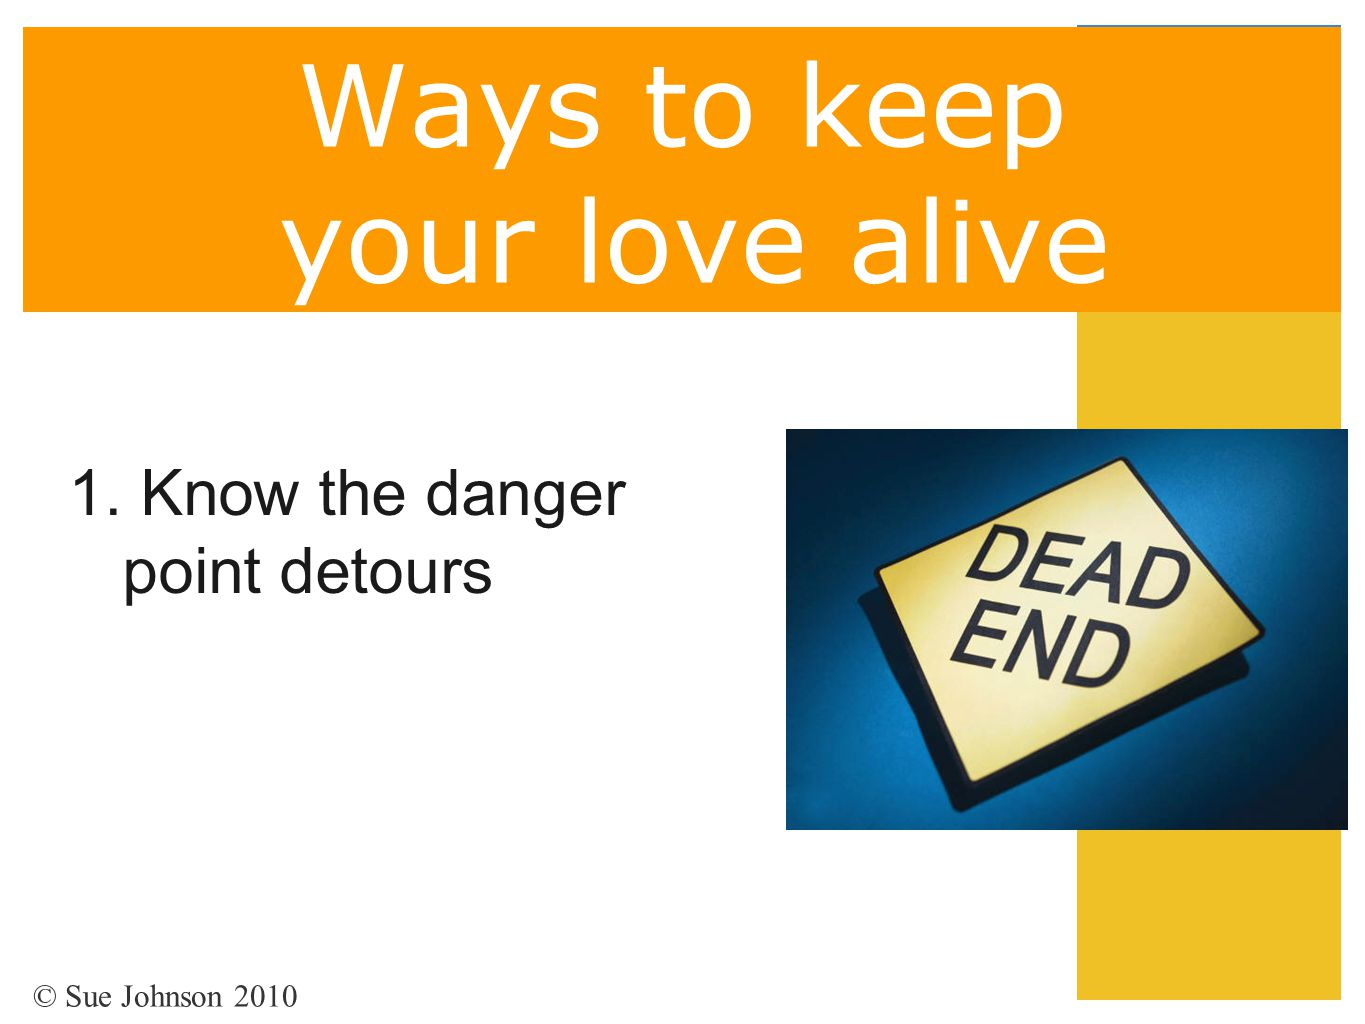 Ways to keep your love alive 1. Know the danger point detours © Sue Johnson 2010